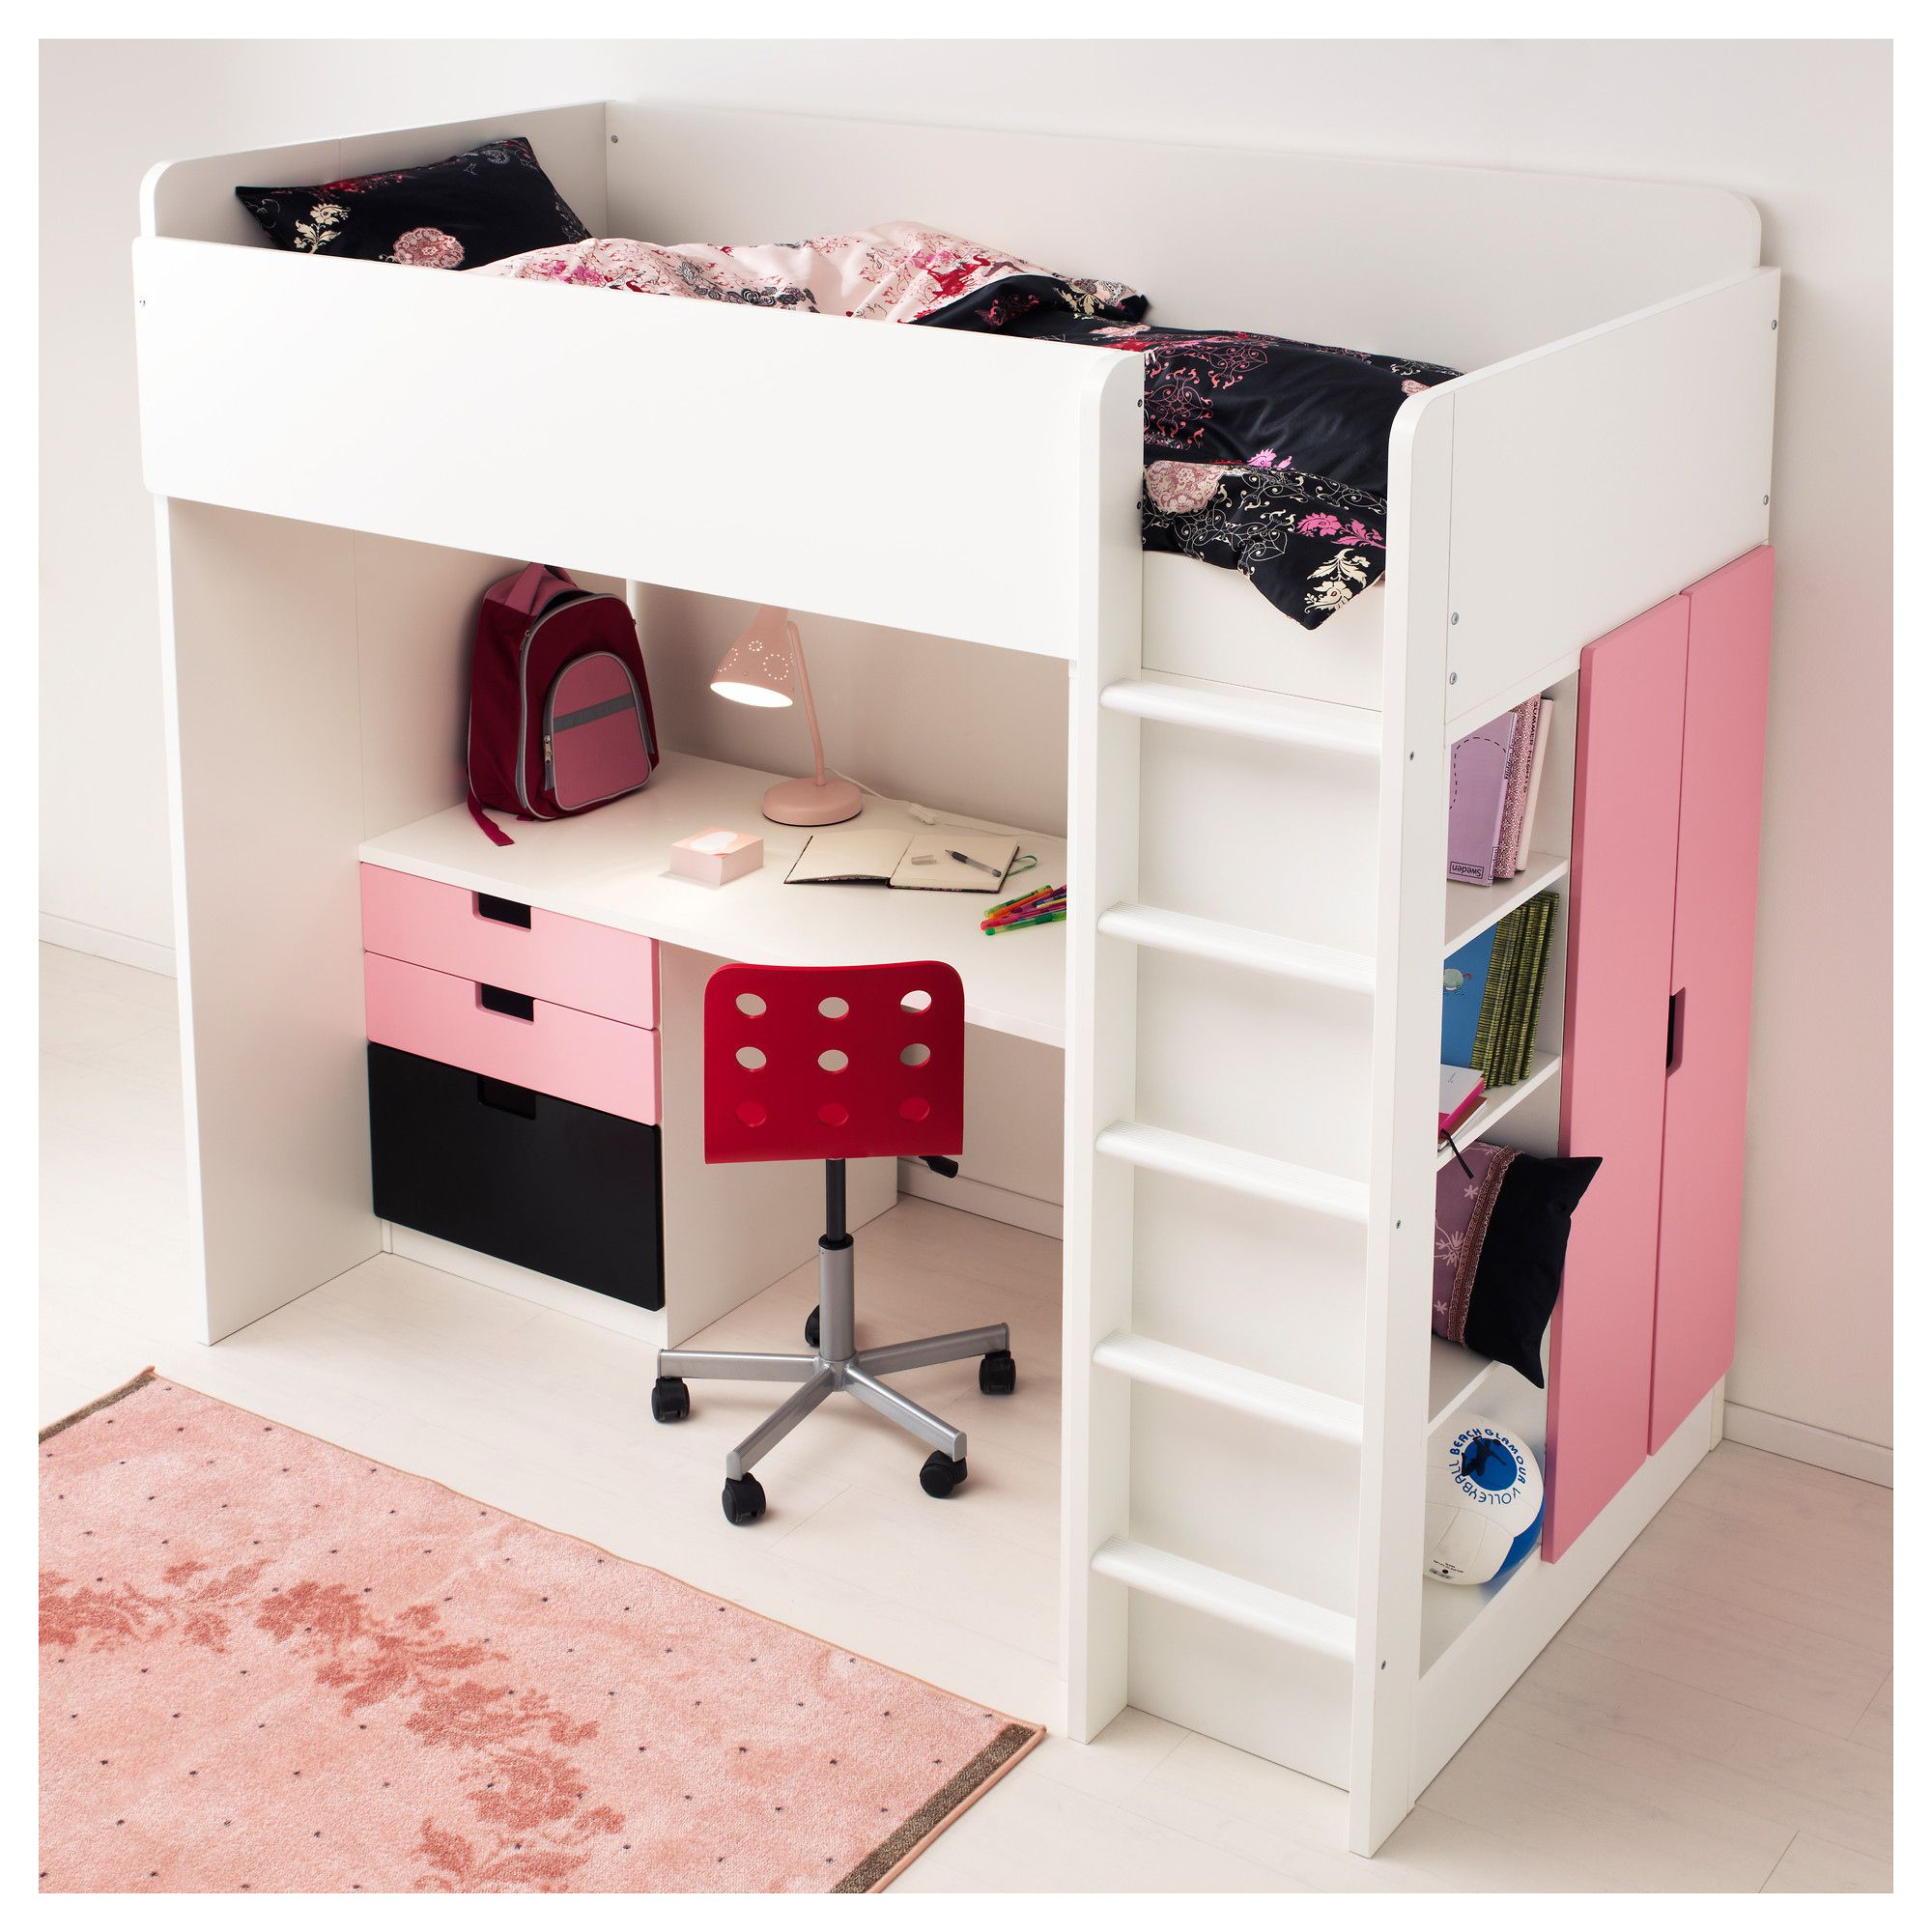 Loft bed decorating ideas  Ikea Bed with Desk  American Freight Living Room Set Check more at